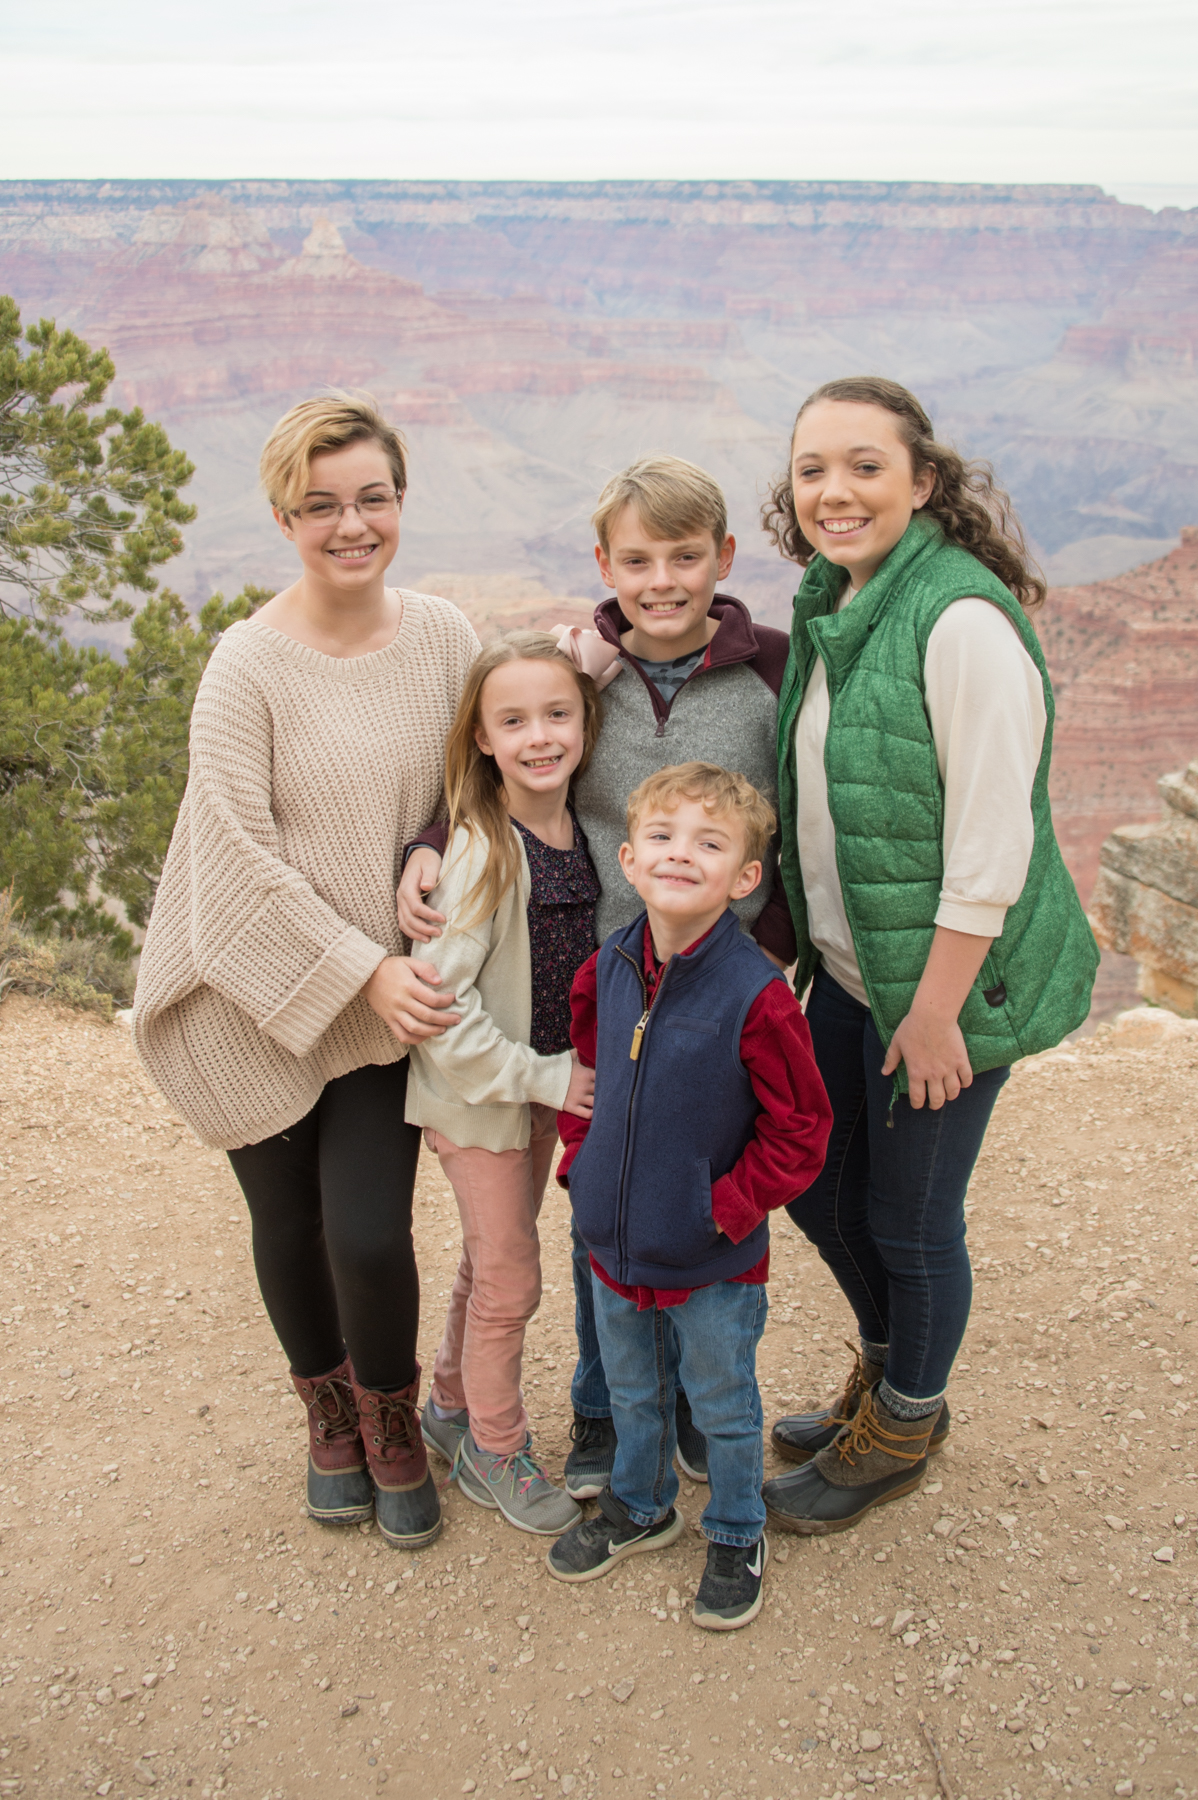 Kid photo at grand canyon